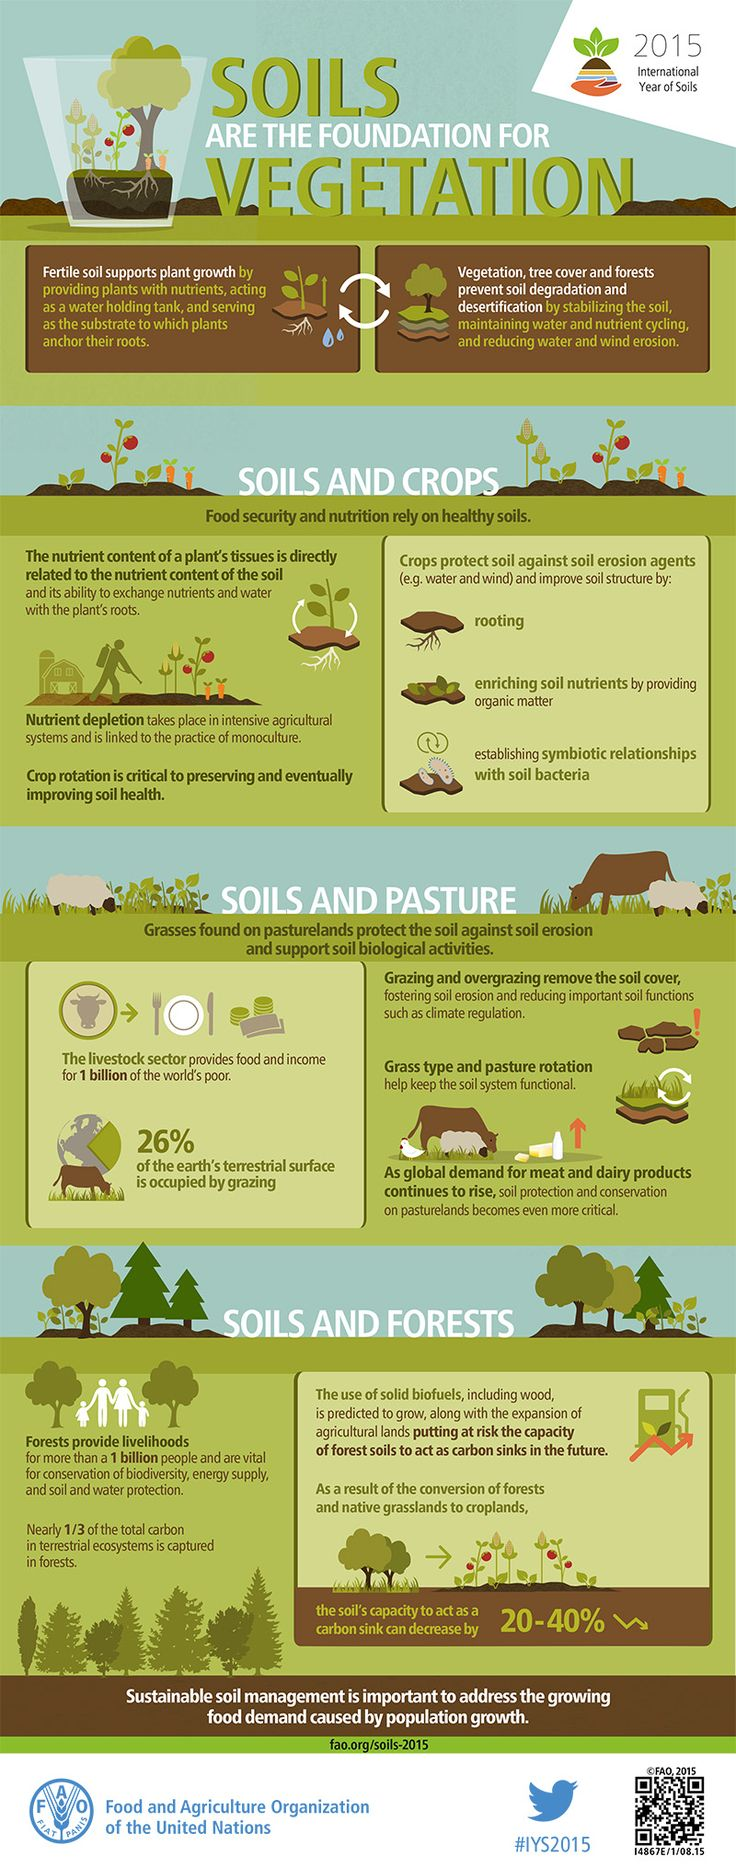 Soils and vegetation have a reciprocal relationship. Fertile soil encourages plant growth by providing plants with nutrients, acting as a water holding tank, and serving as the substrate to which plants anchor their roots. In return, vegetation, tree cover and forests prevent soil degradation and desertification by stabilizing the soil, maintaining water and nutrient cycling, and reducing water and wind erosion.